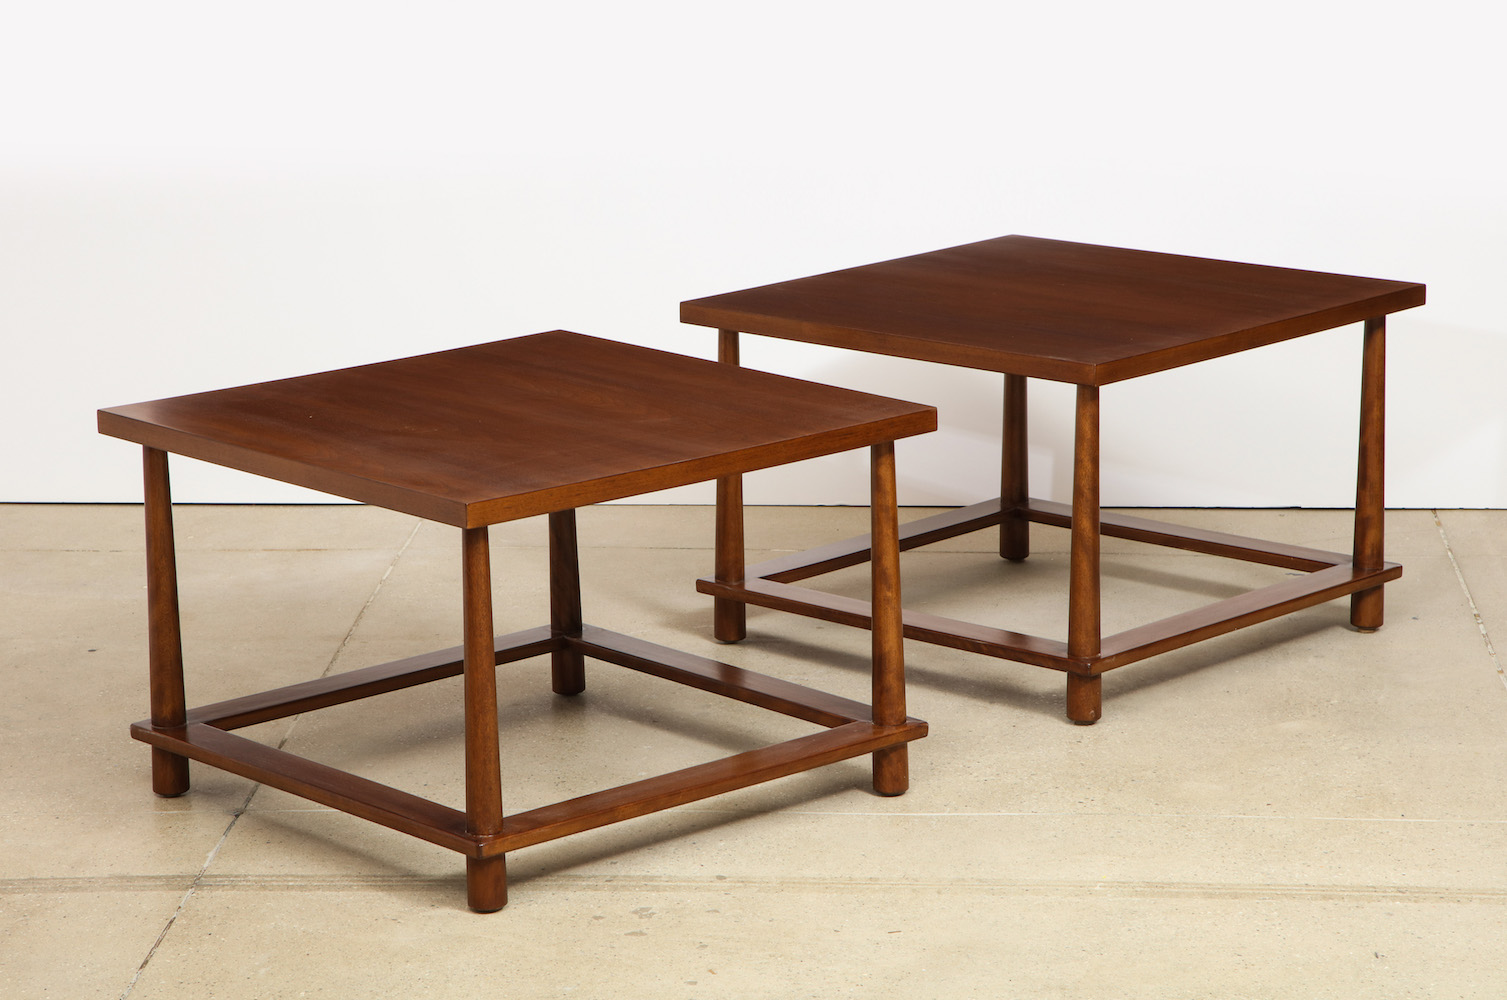 Gibbings big square tables 2.jpg